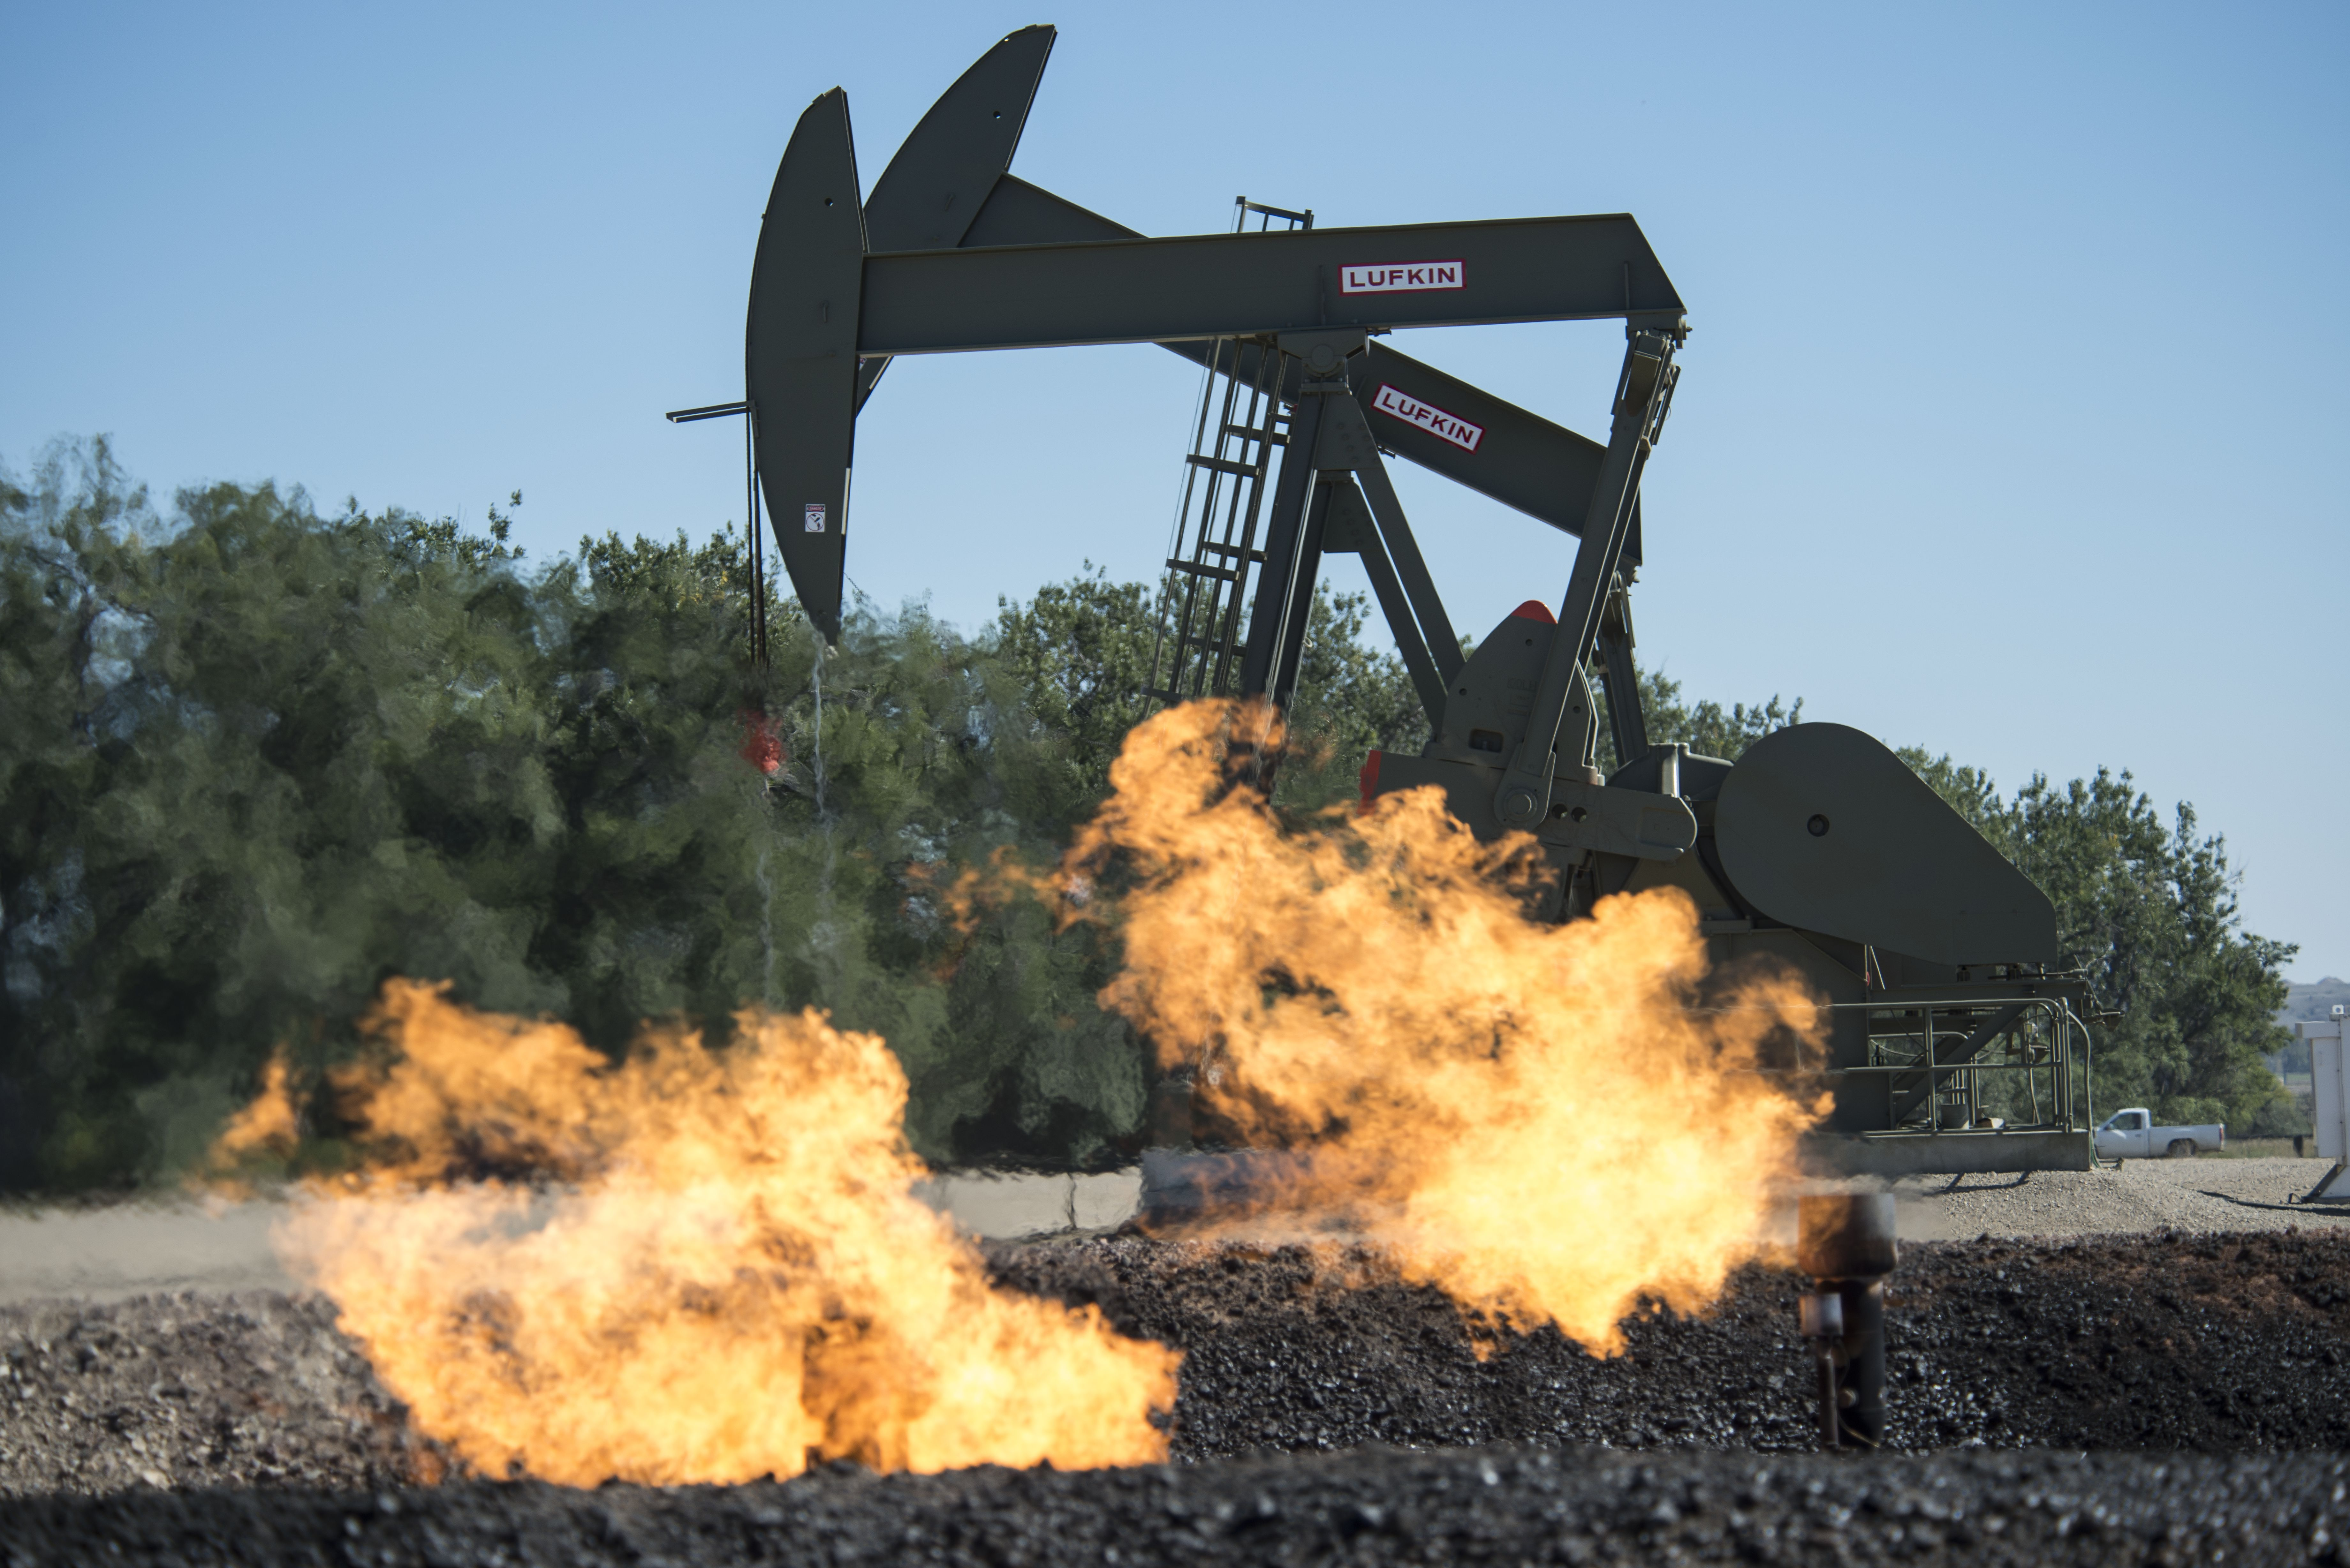 Study: Methane gas emissions could be greater than previously known - Axios